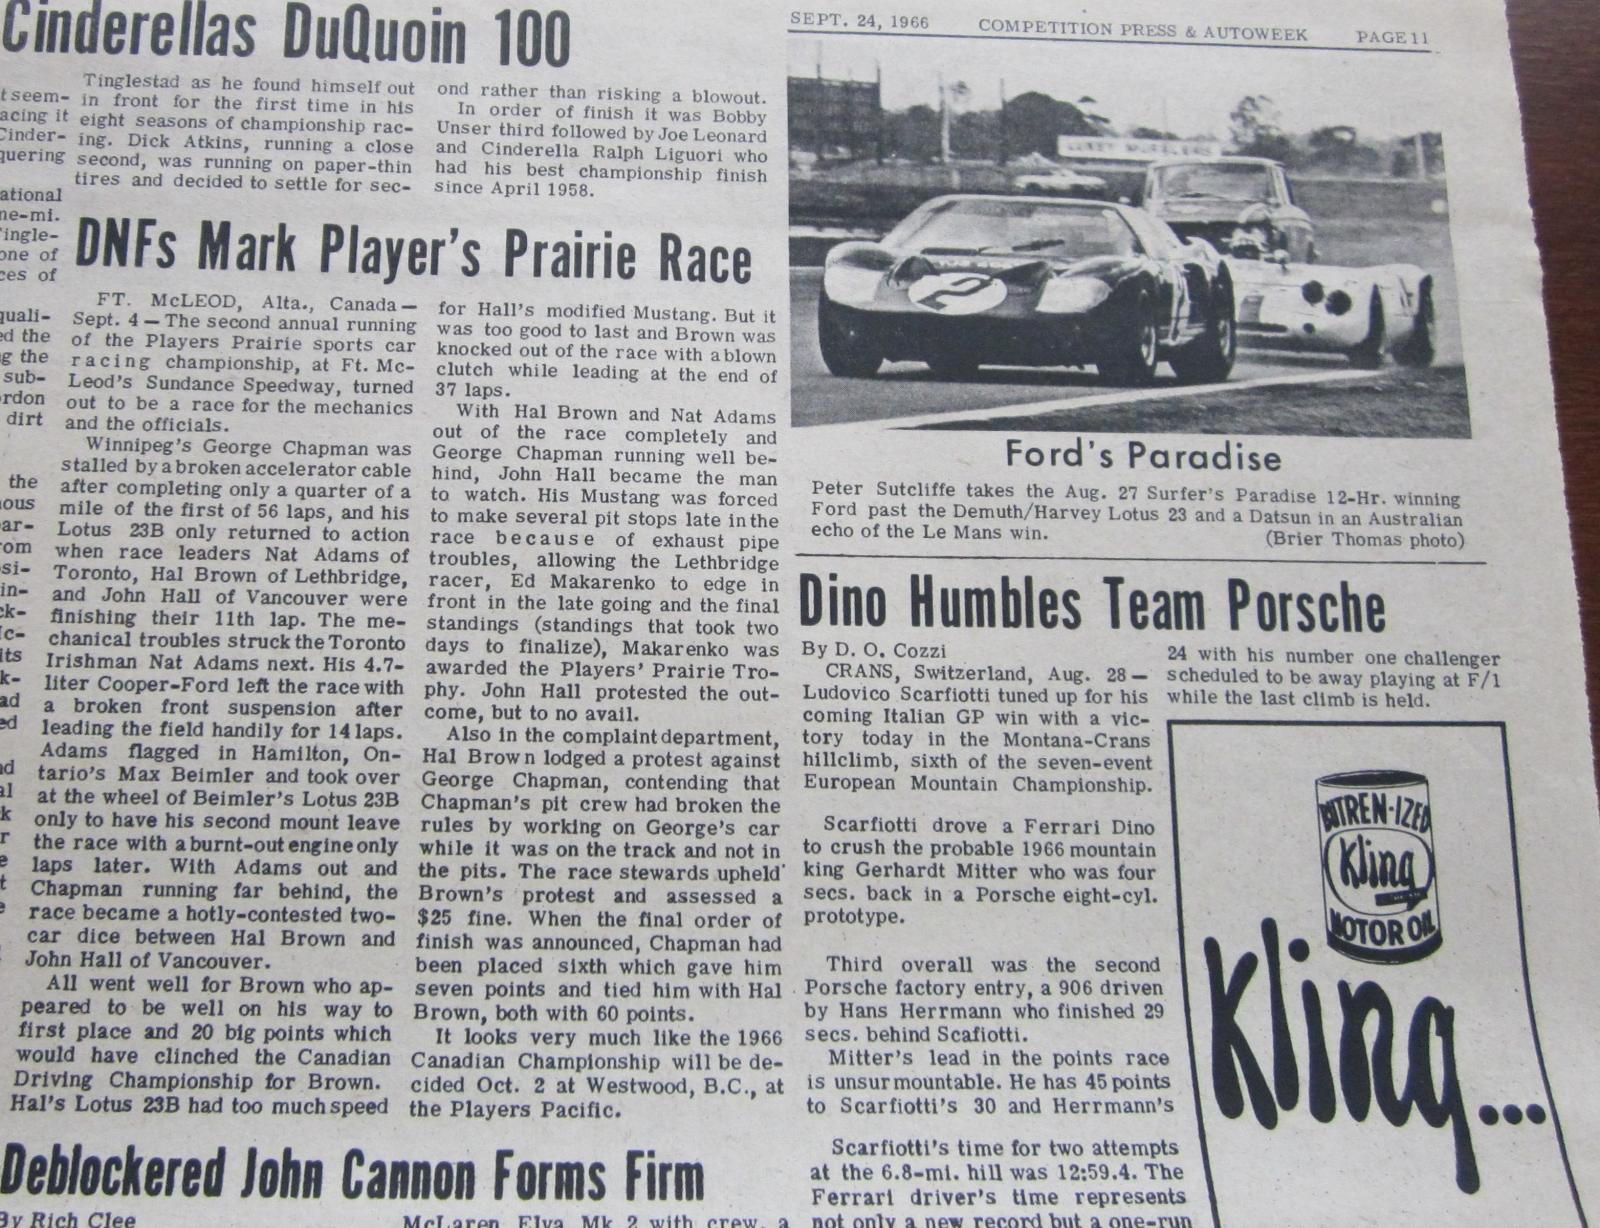 1966 Canadian Drivers' Championship - Fort McLeod September 4, 1966